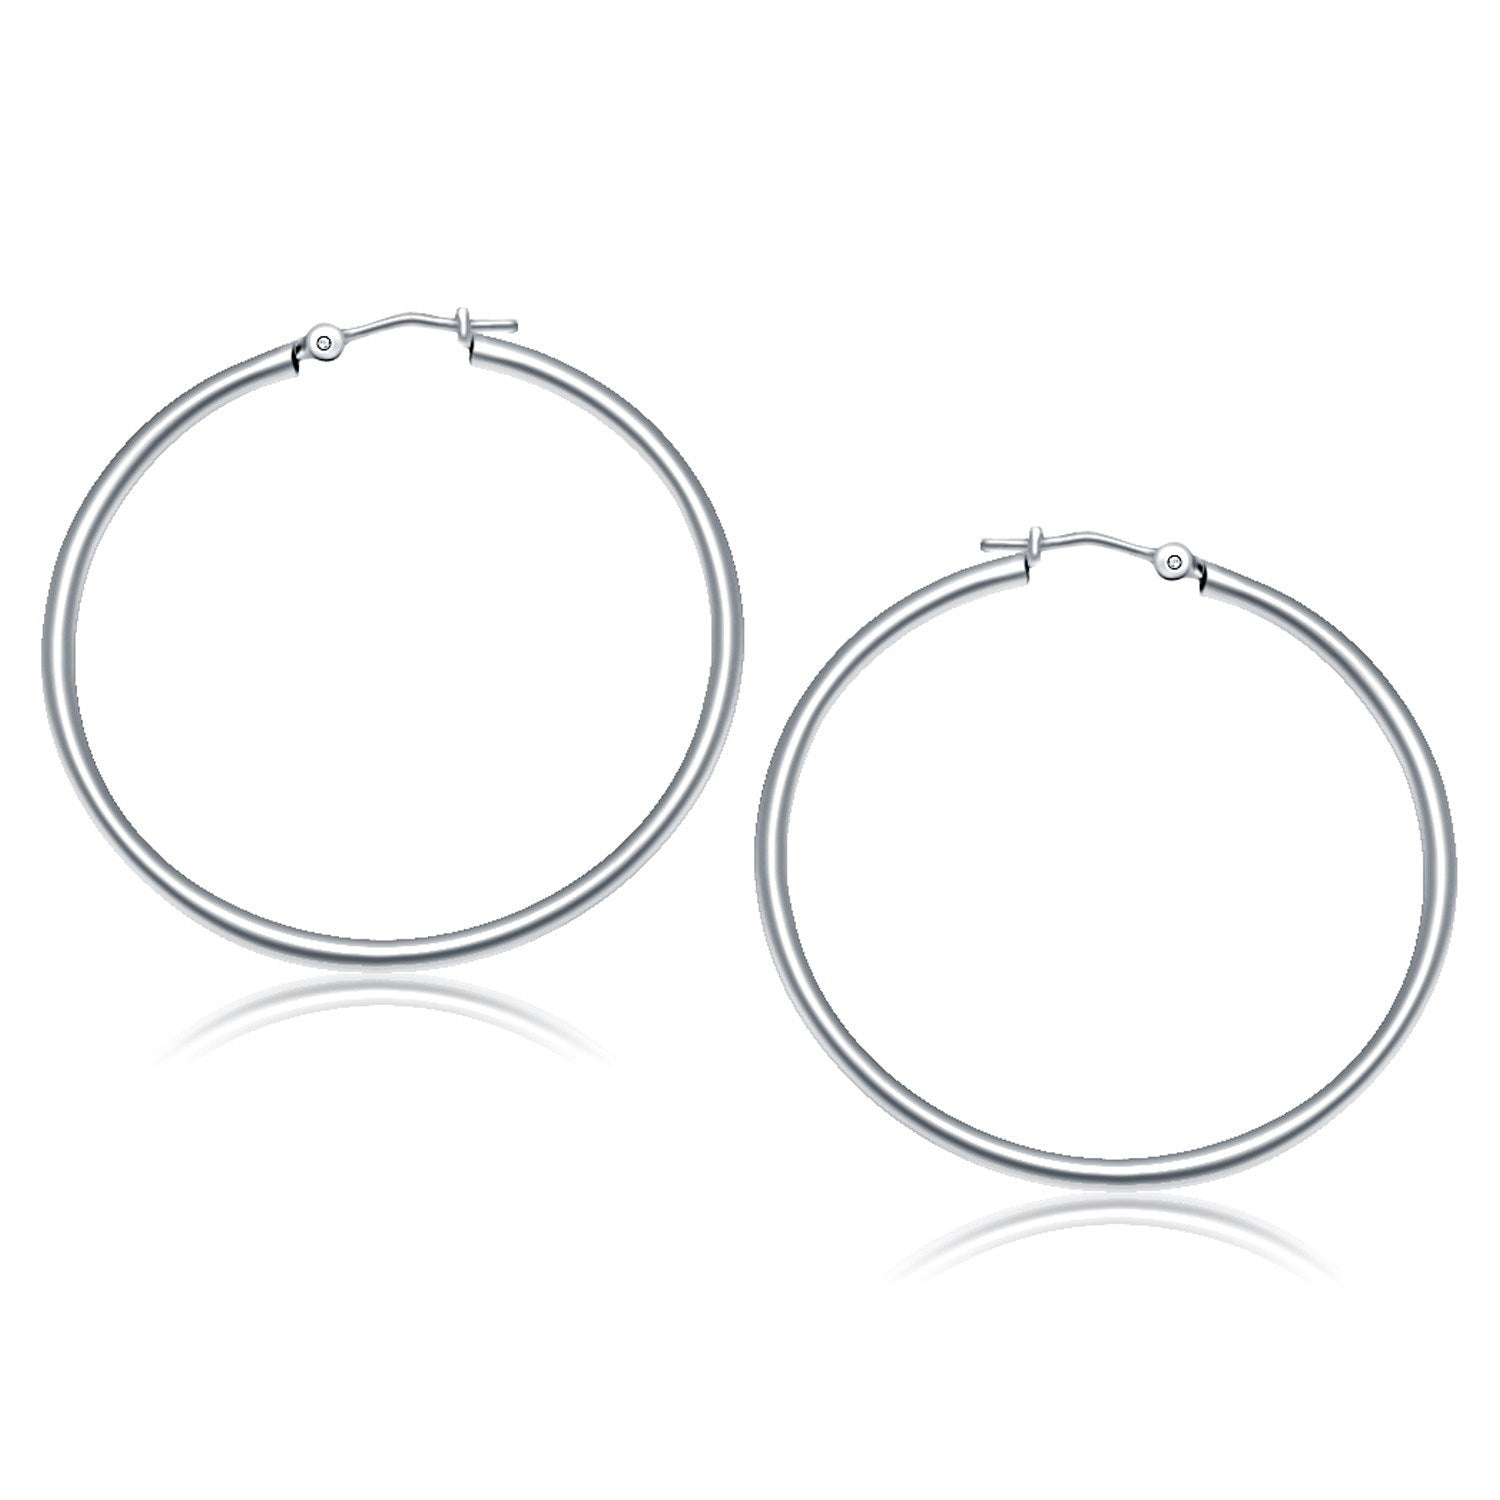 Modern Hollywood Style Classy 10K White Gold Polished Hoop Earrings (40 mm)